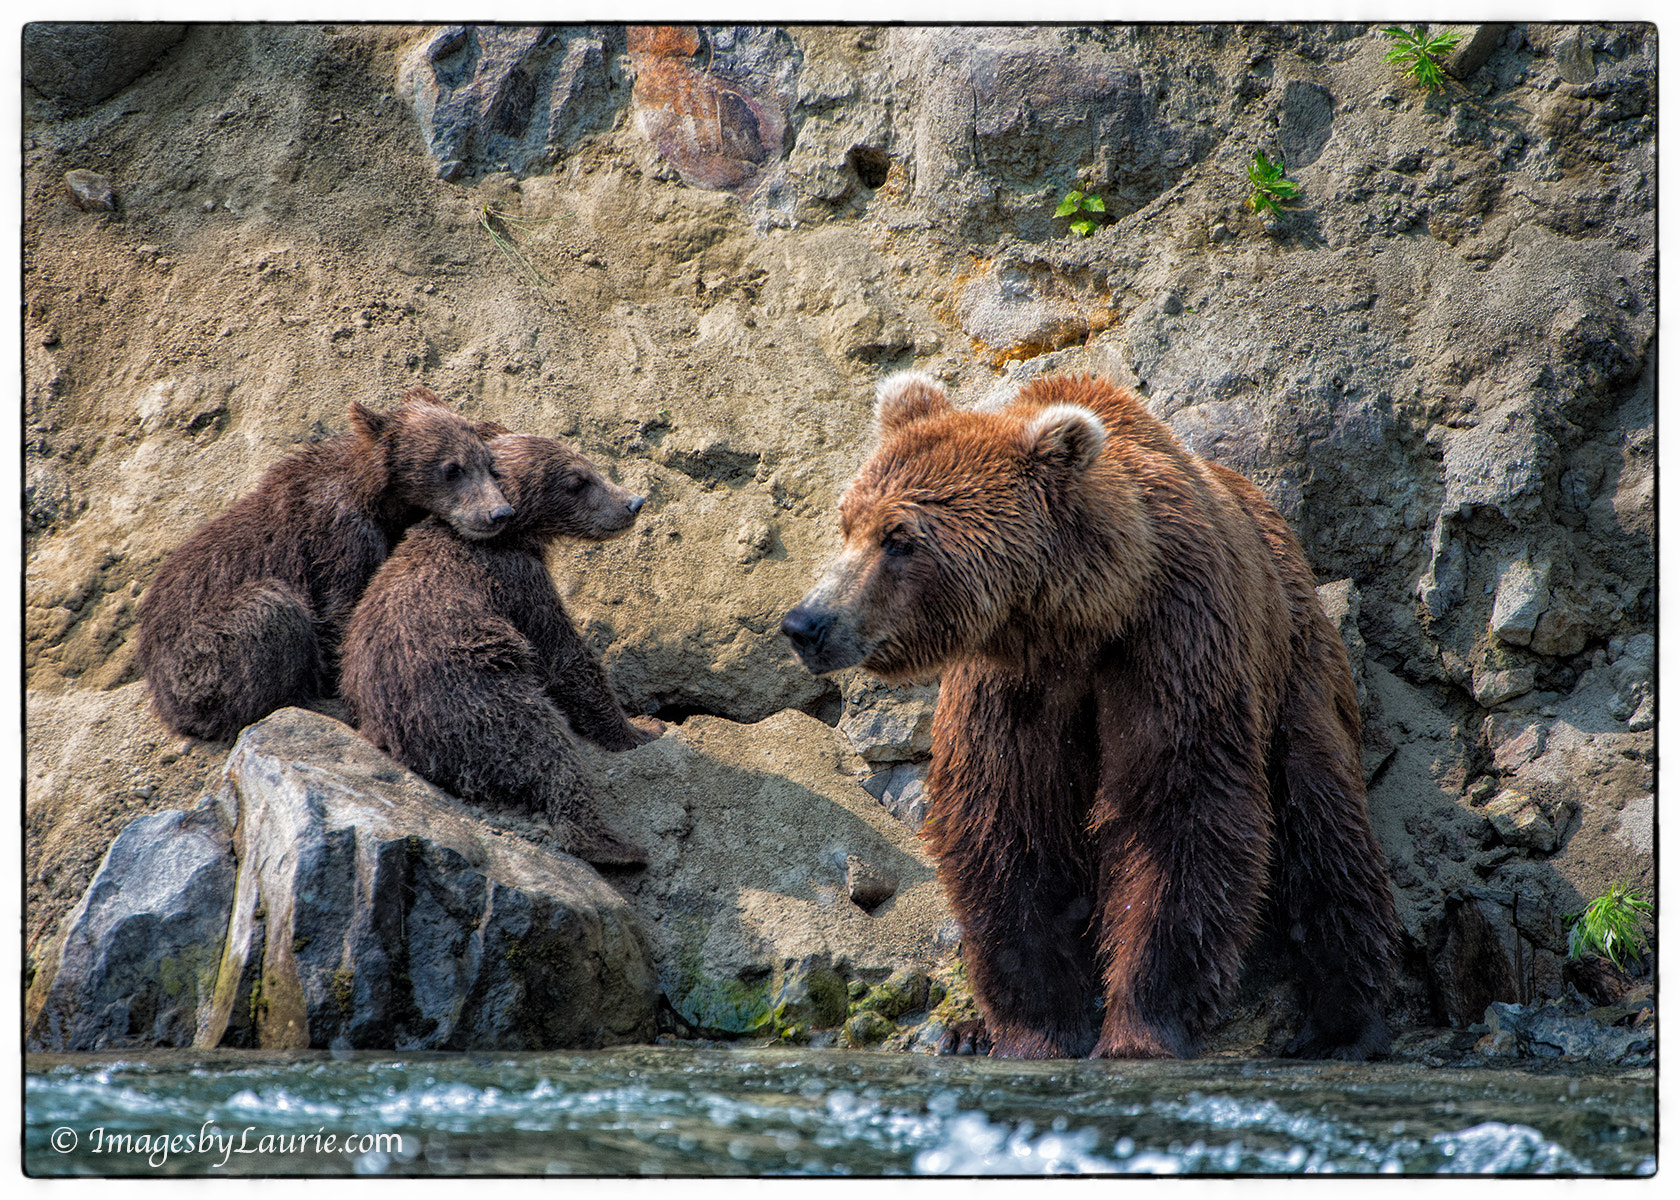 Photograph Waiting for dinner by Laurie Rubin on 500px